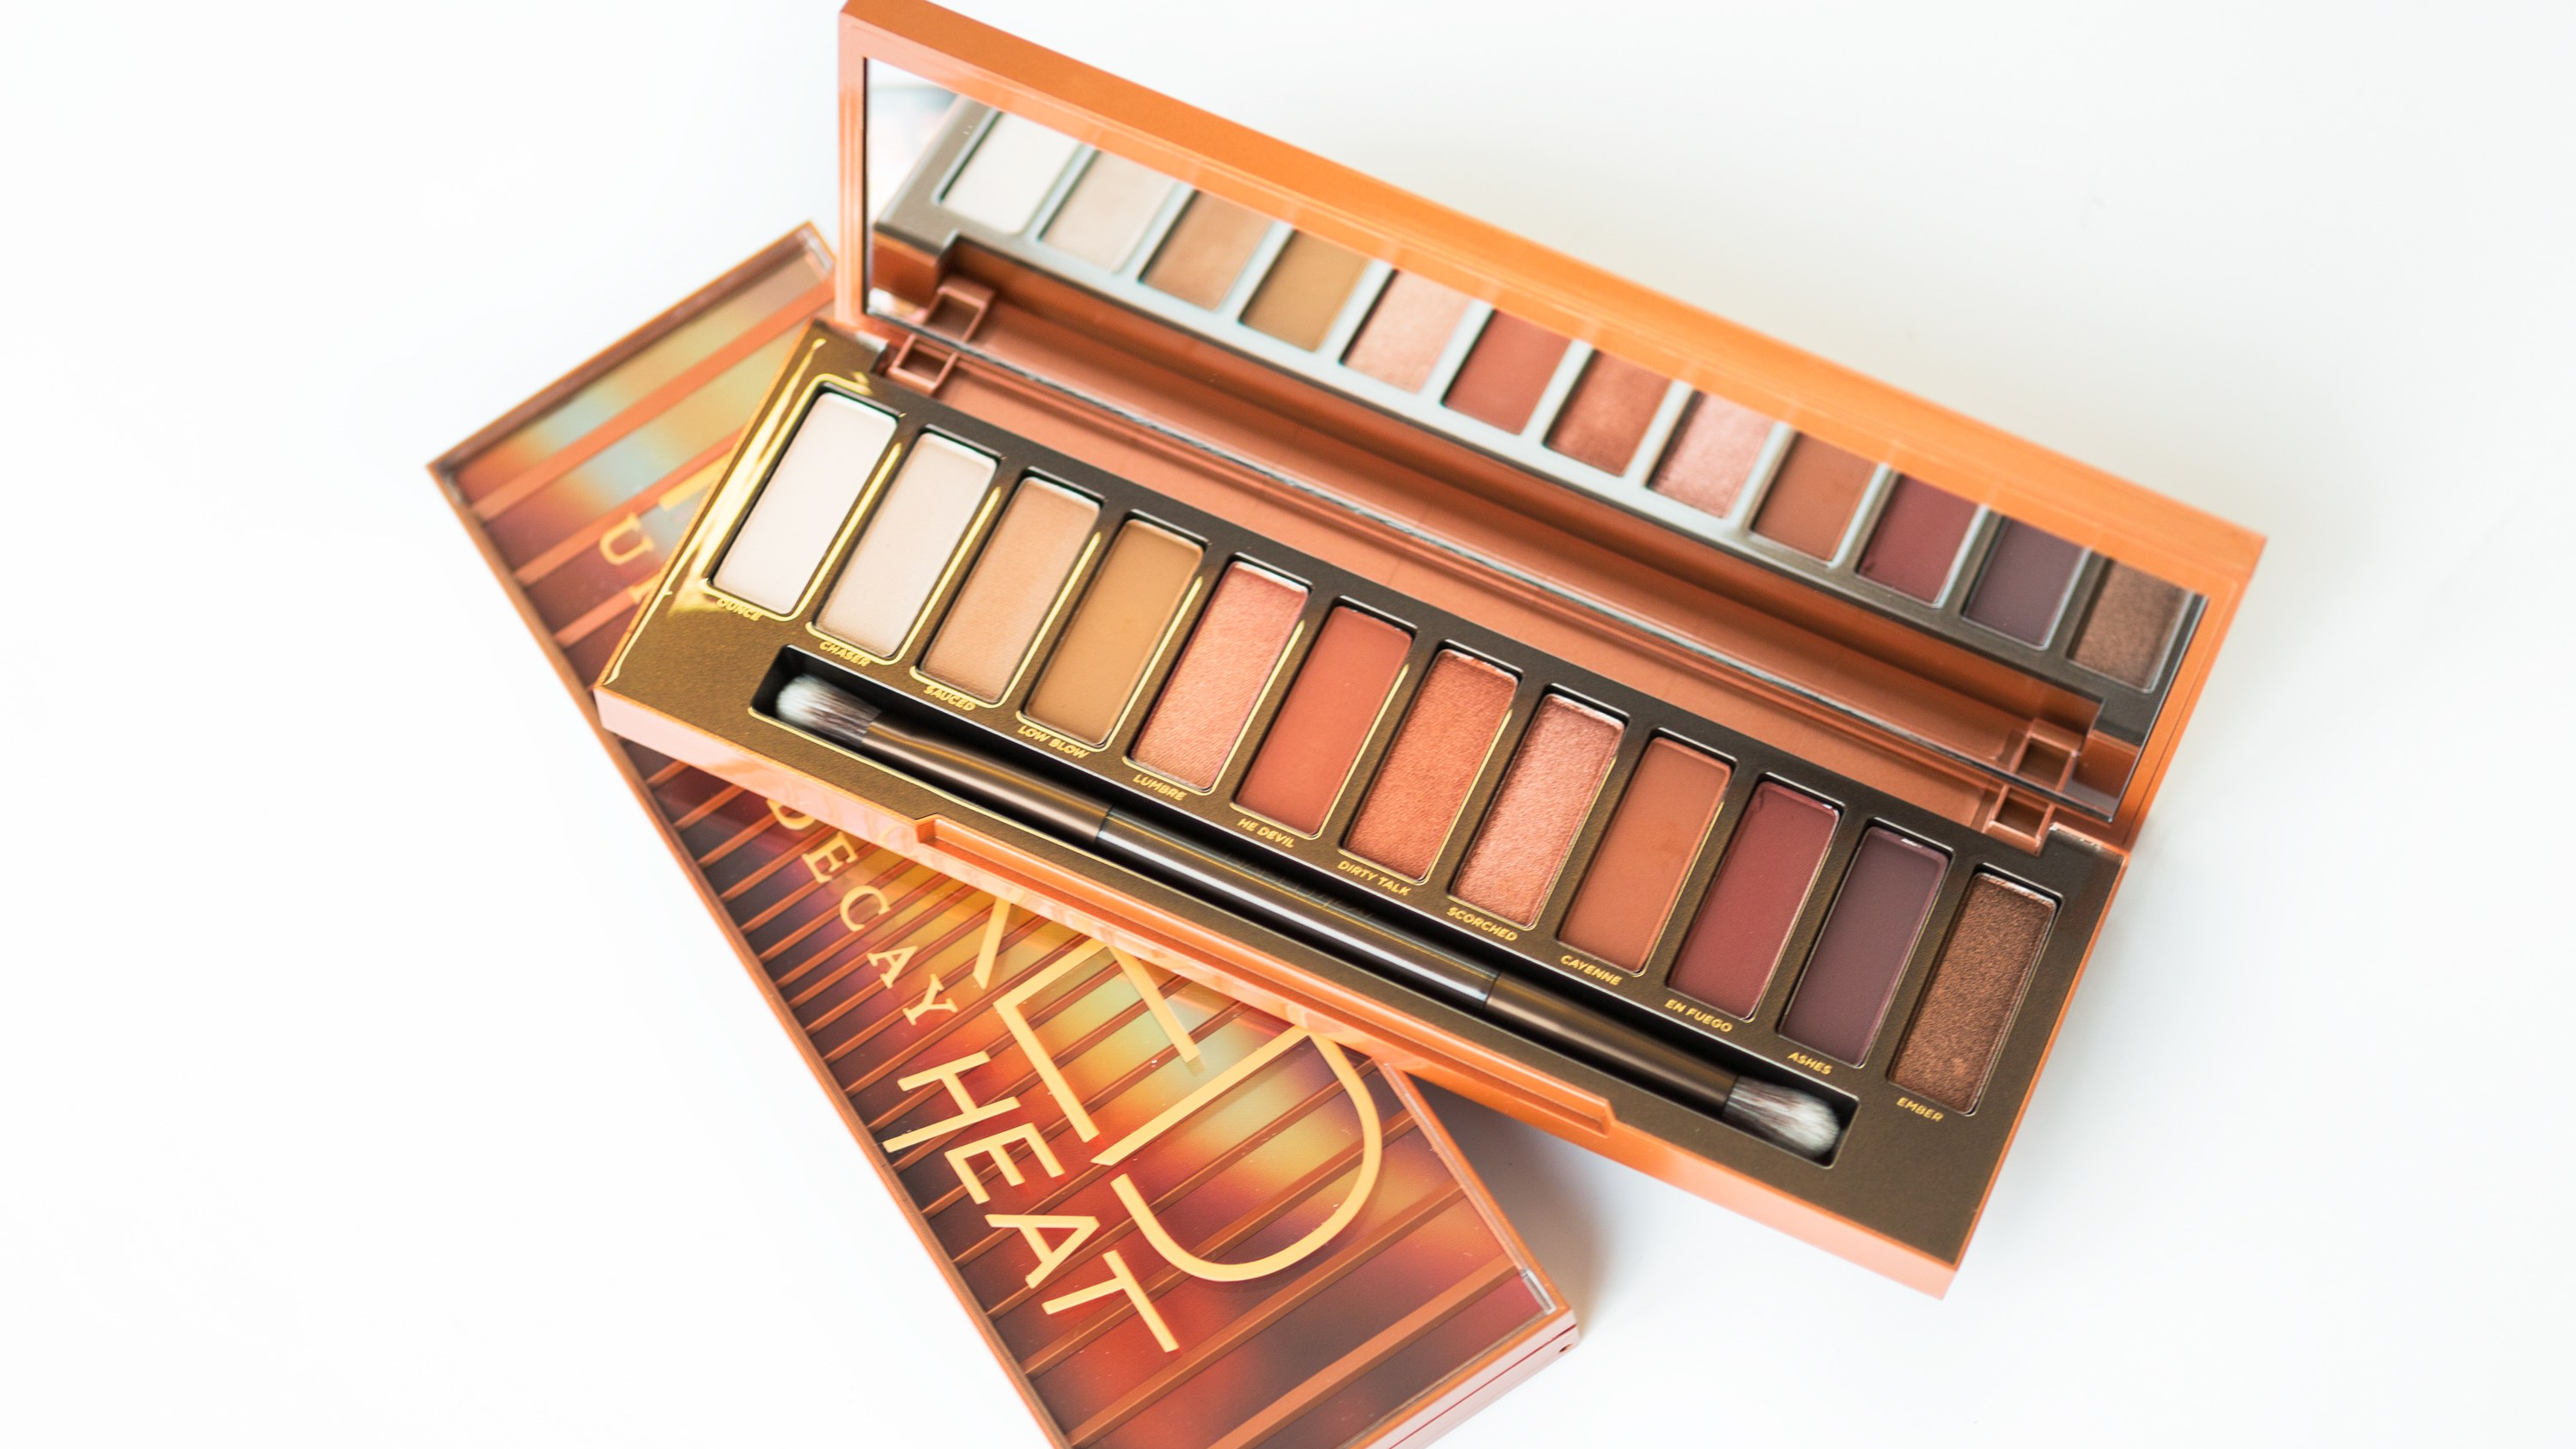 Urban Decay's Naked Heat Eyeshadow - By Megan Kelly